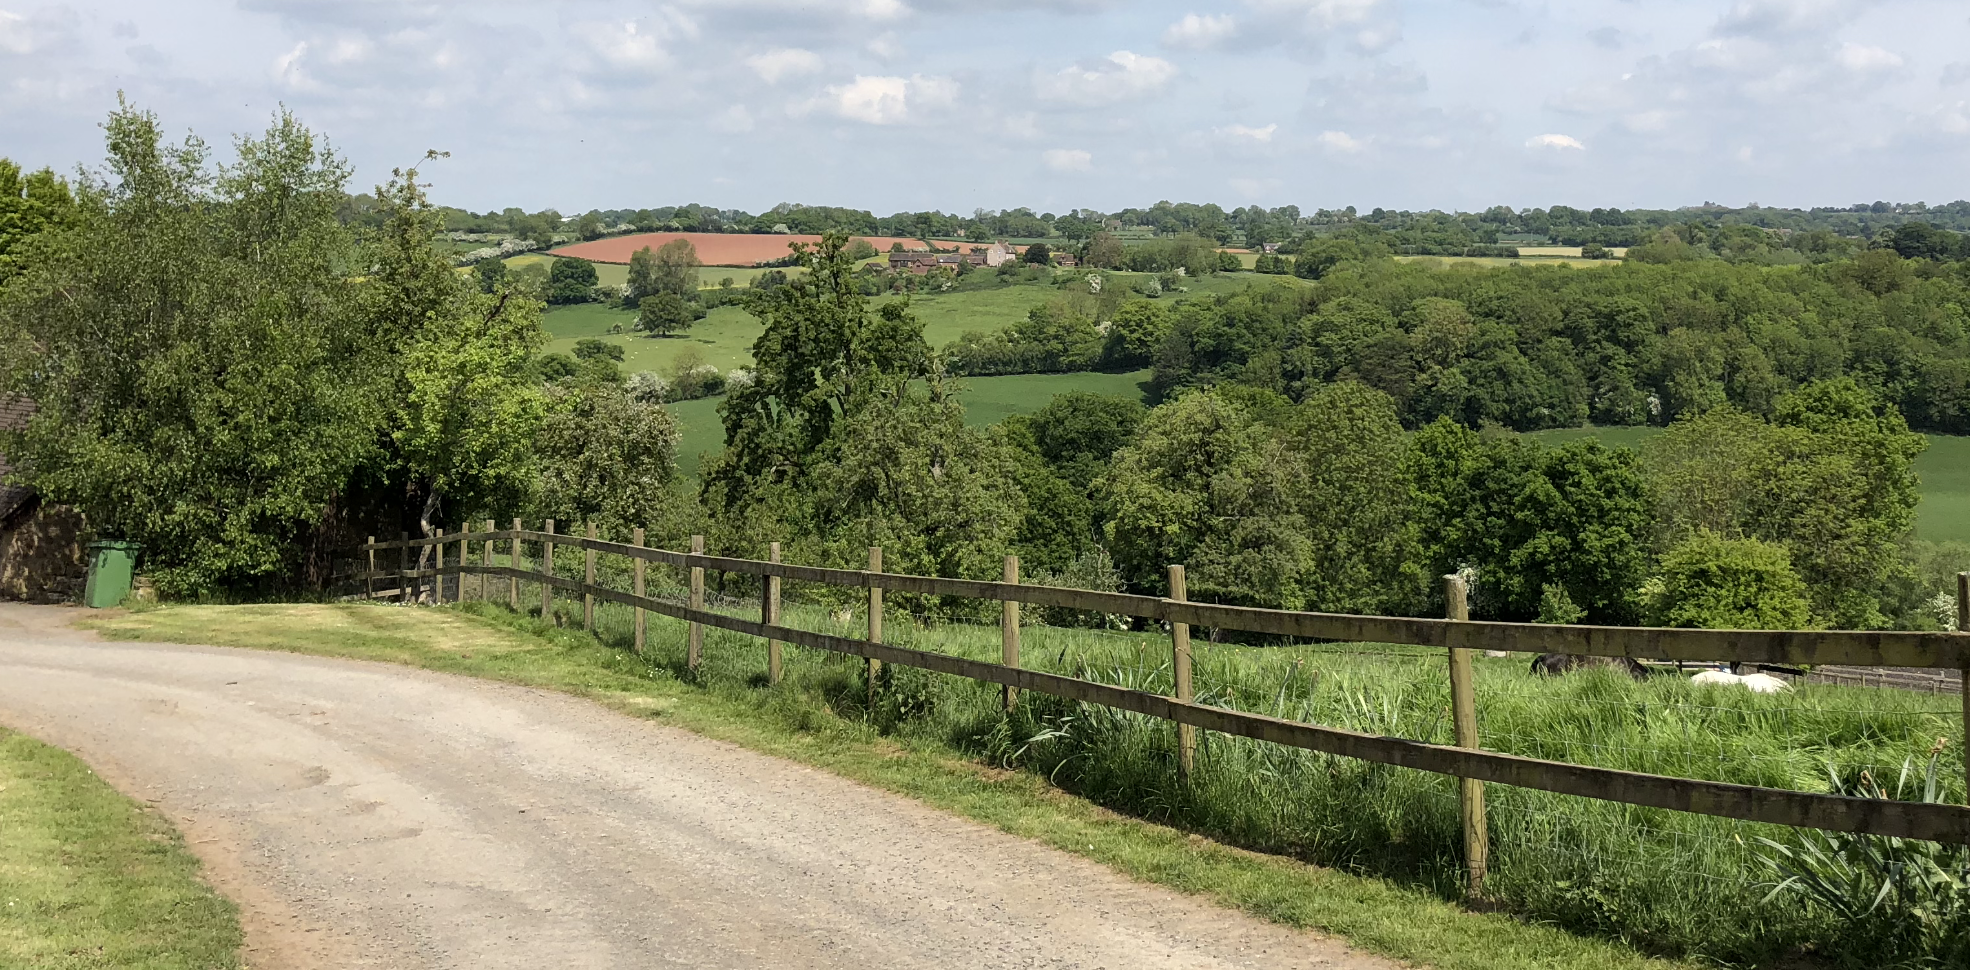 The downhill tarmacked drive is edged with green grass; beyond there's a railed fence closing a field of tall grass with two horses slightly in view grazing. The vista beyond is the Severn valley, a beautiful scene of fields, trees and open countryside flowing away until it touches the sky of a typical English summer day.